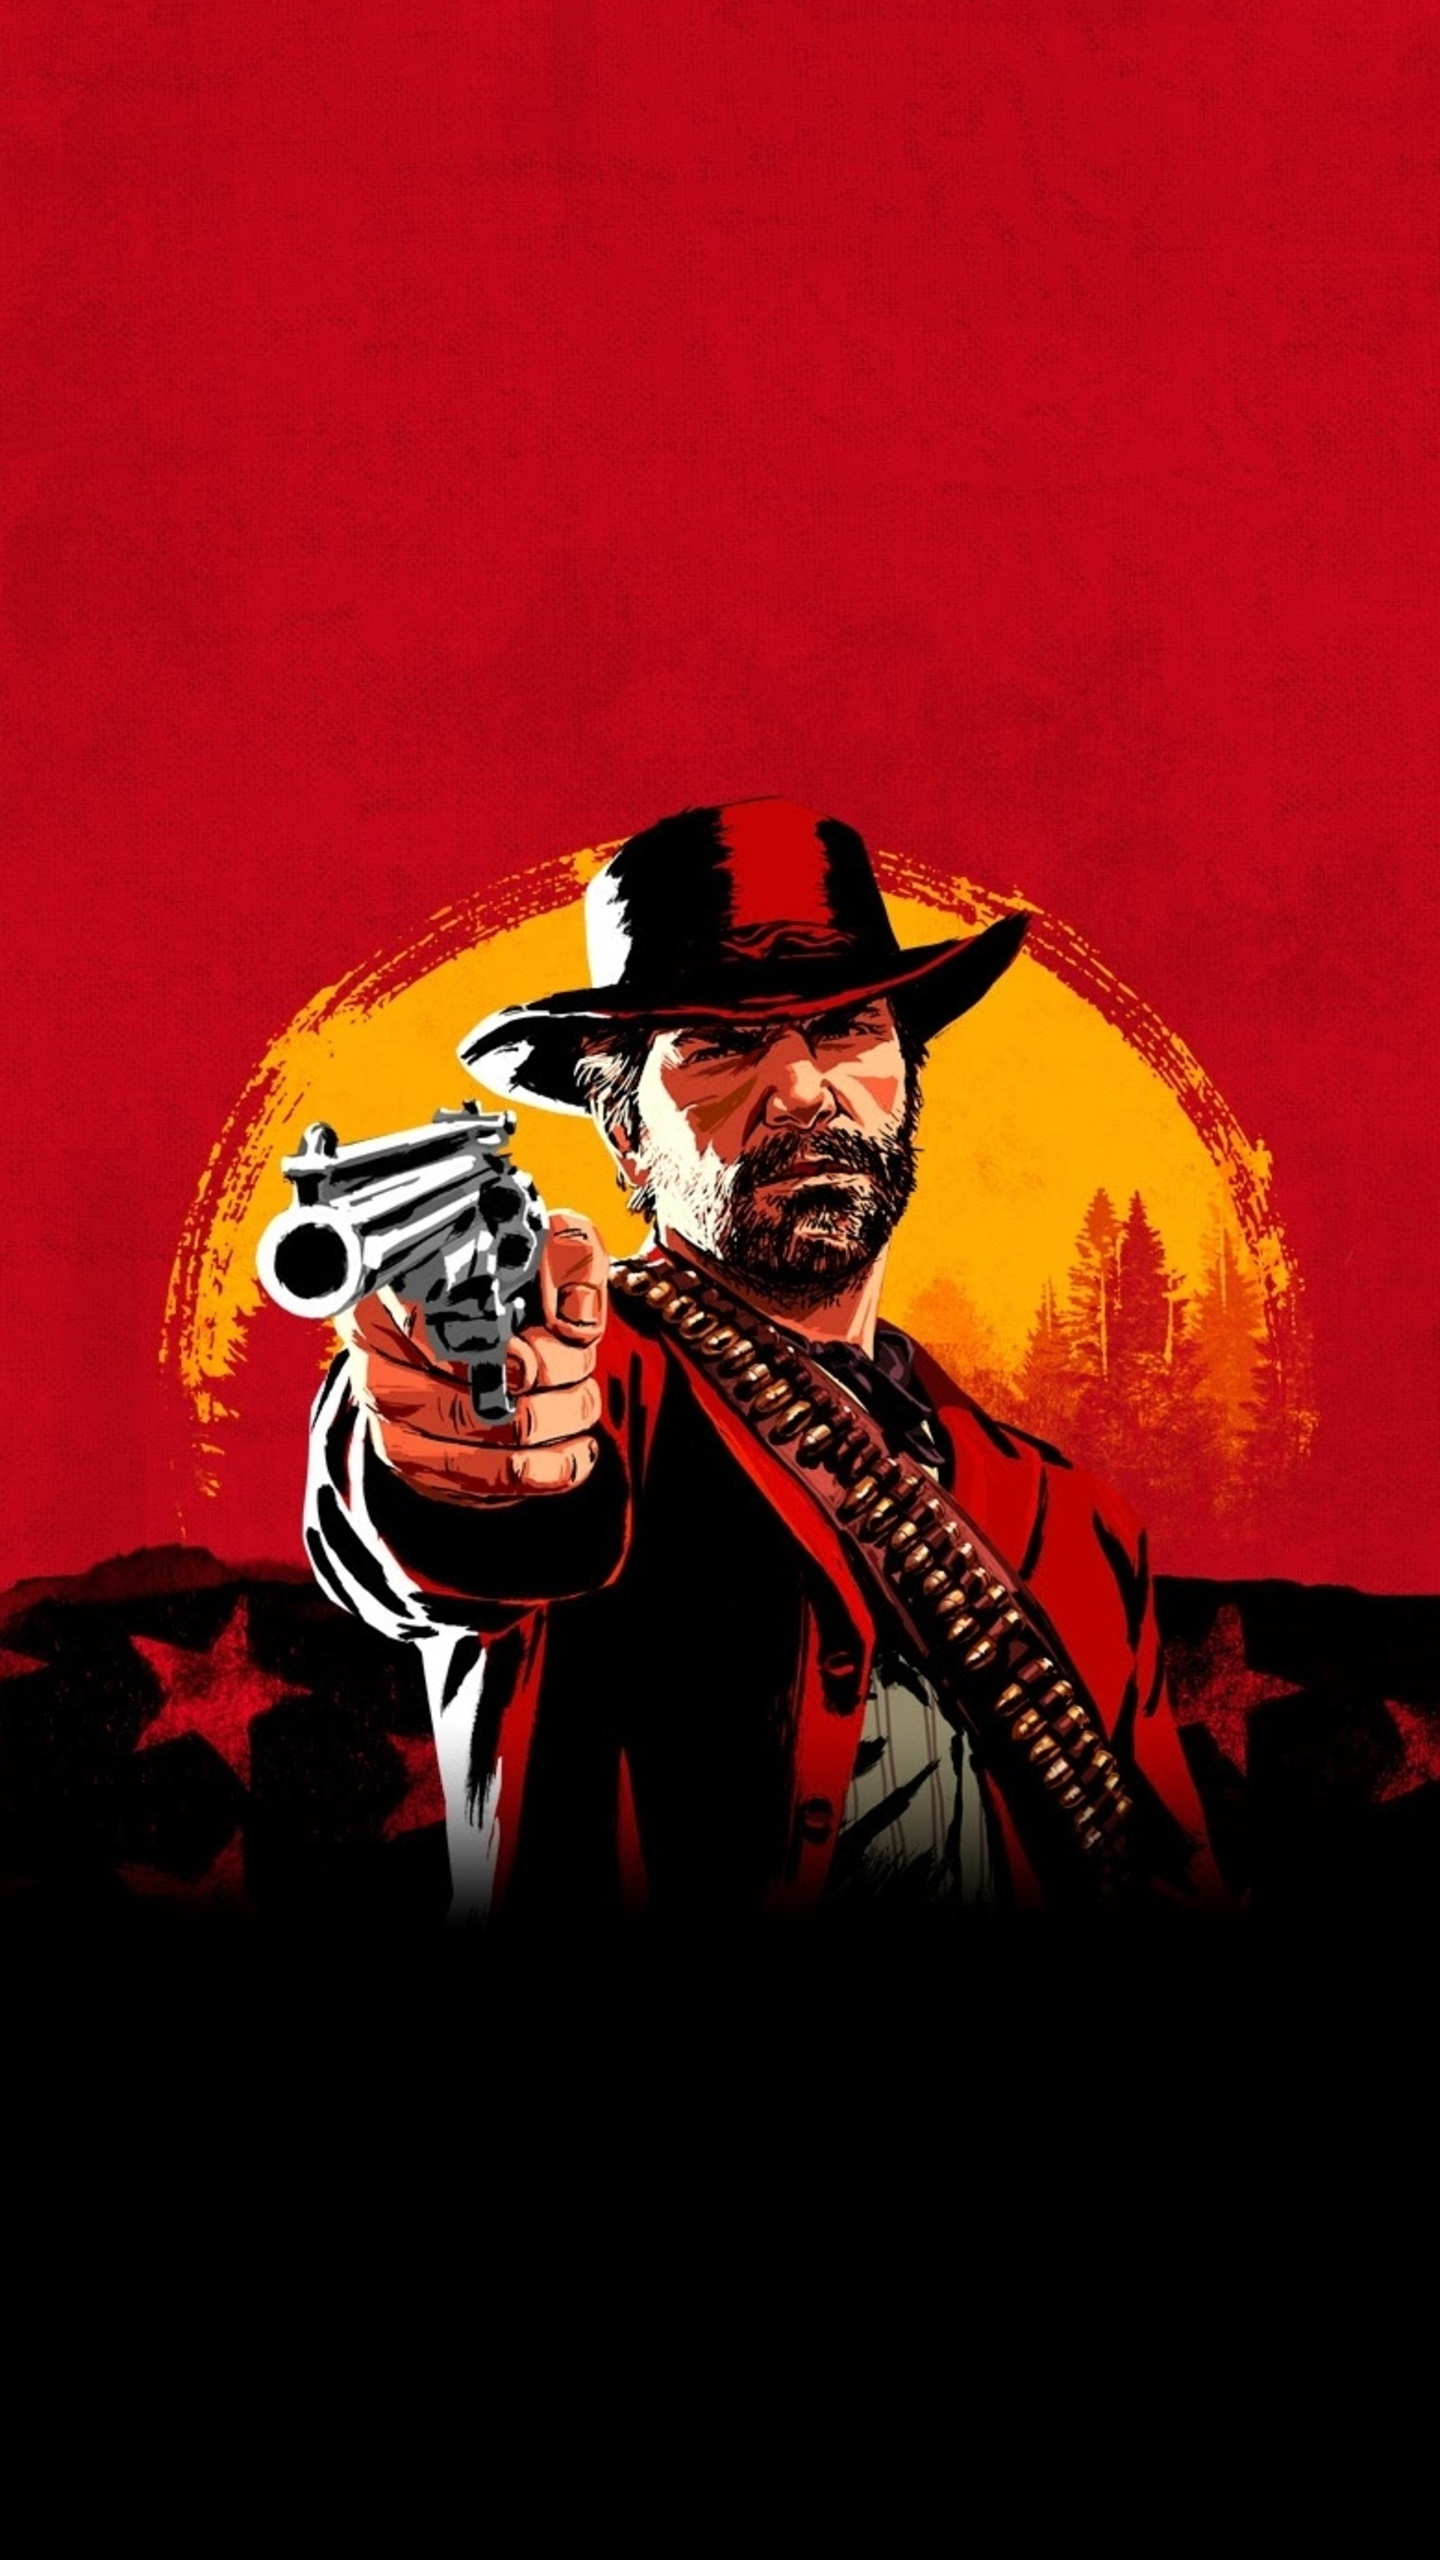 1440x2560 Red Dead Redemption 2 Samsung Galaxy S6 S7 Google Pixel Xl Nexus 6 6p Lg G5 Hd 4k Wallpapers Images Backgrounds Photos And Pictures